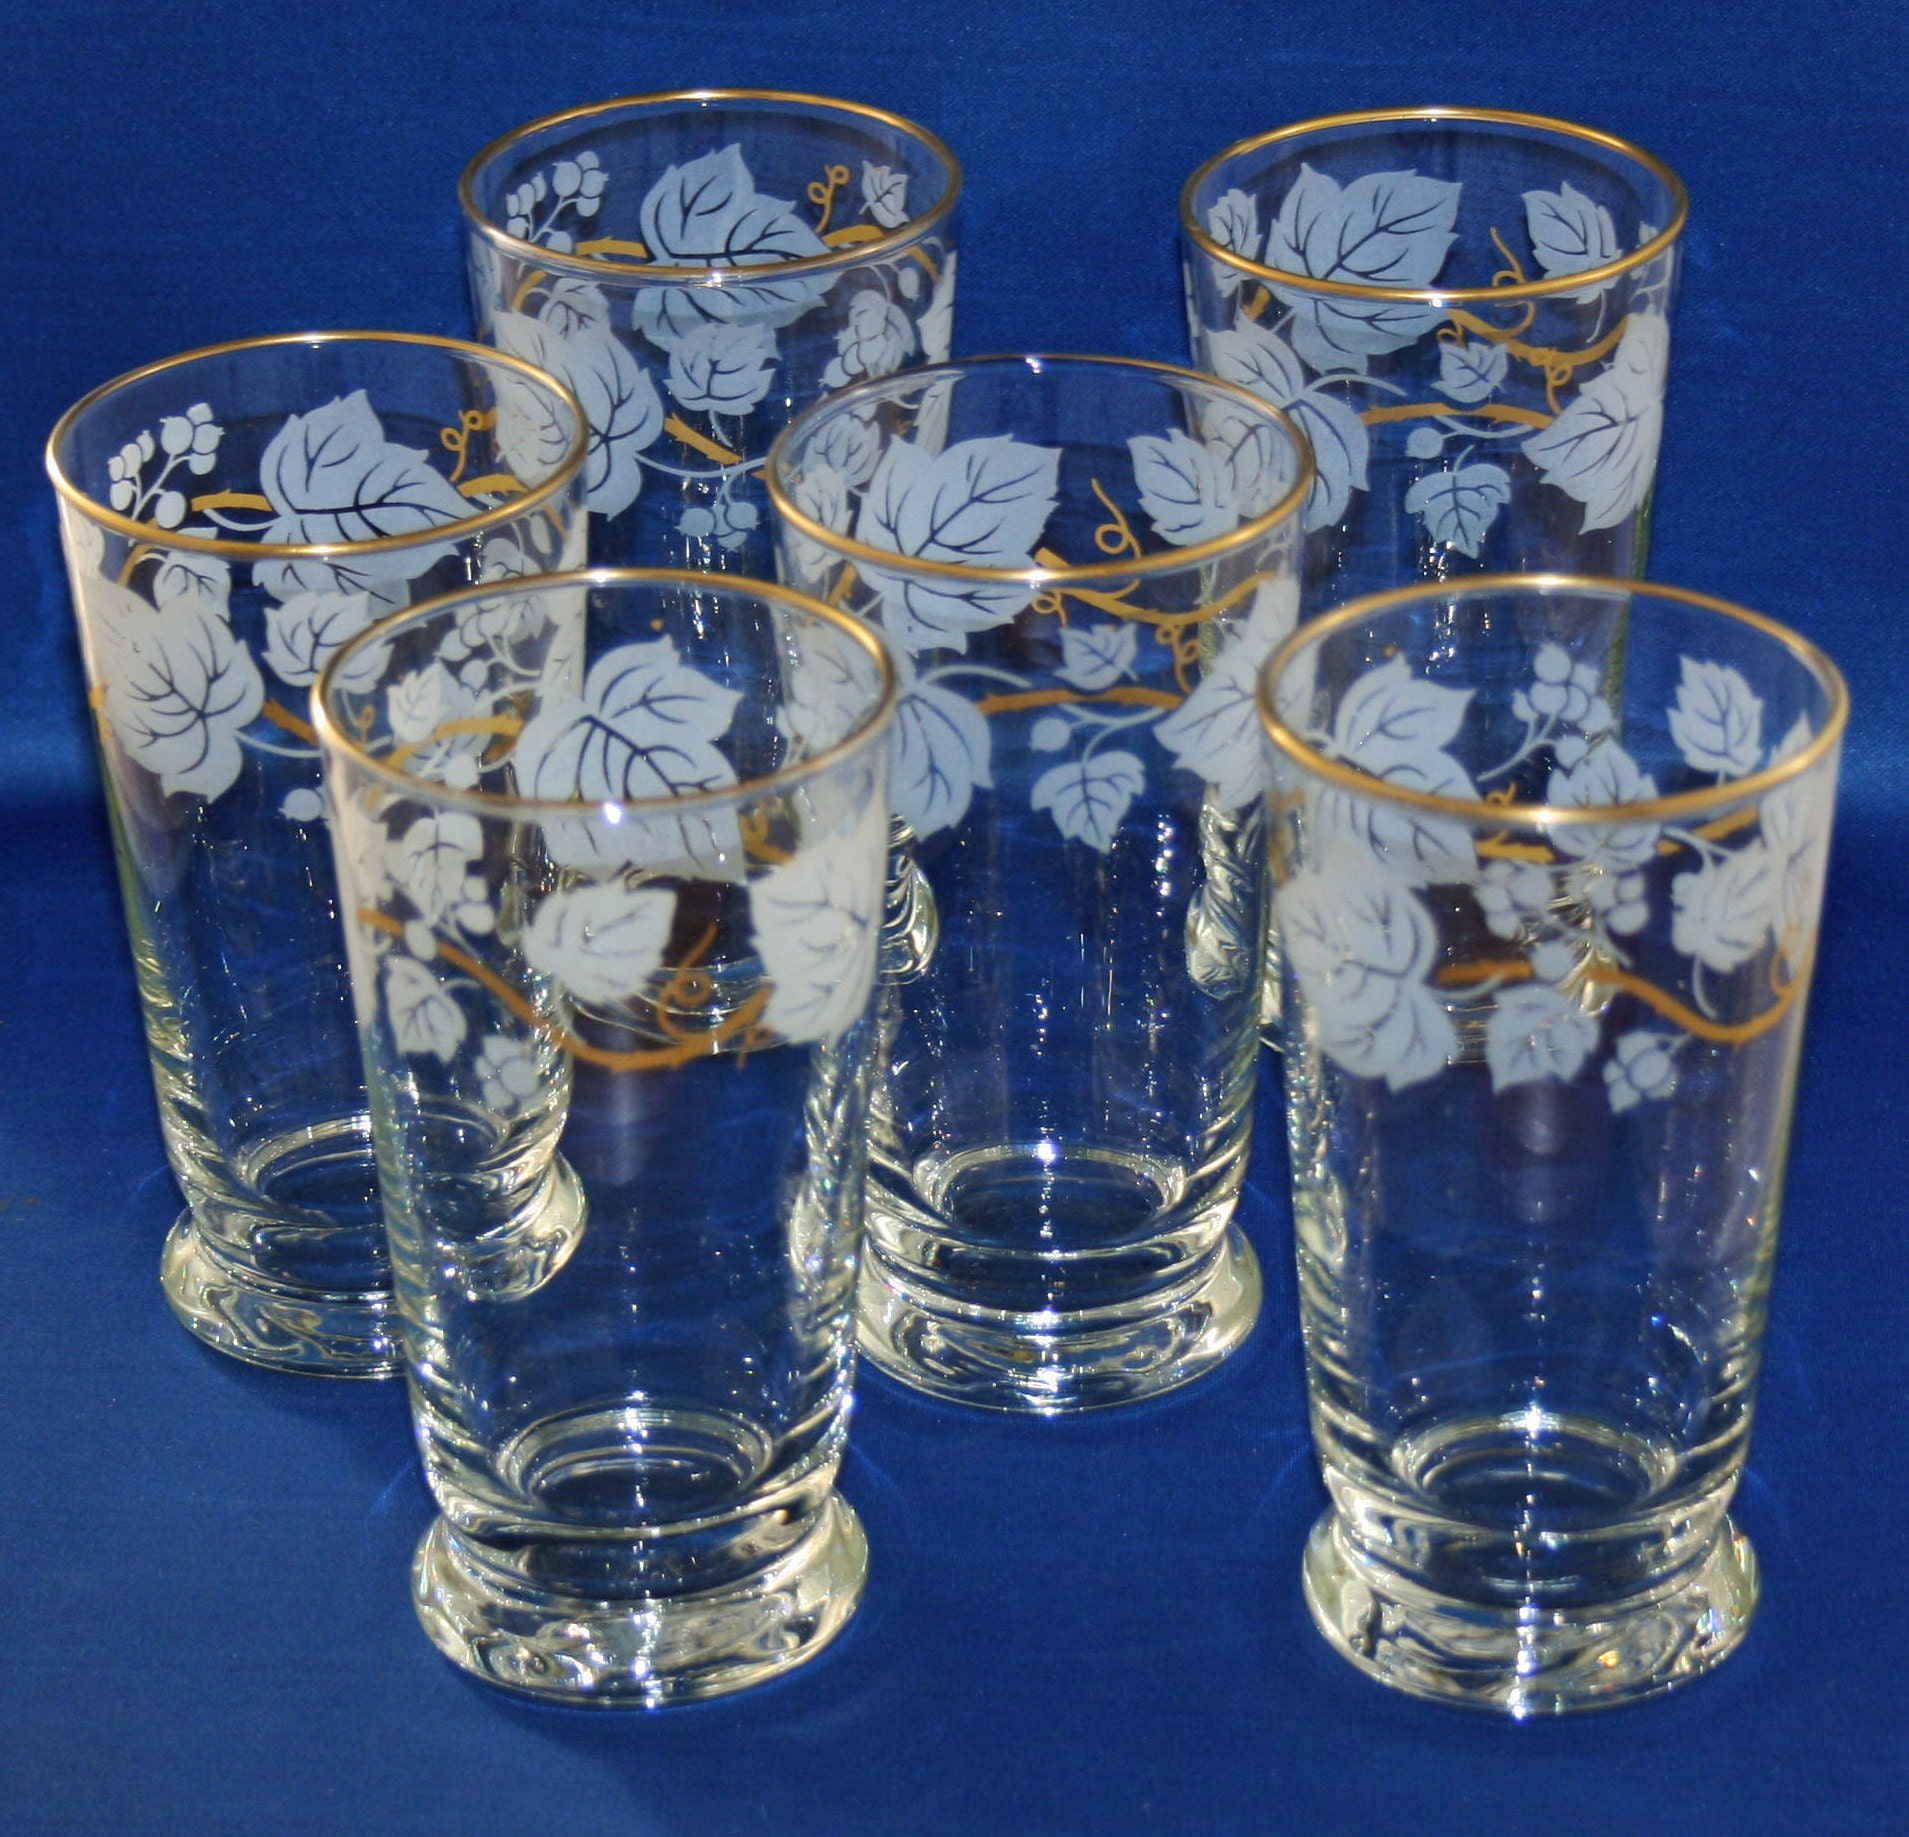 a9fe5c5bb810 Vintage Libbey Ivy Bower Juice Glass set of 6 glasses Signed 1948's 12 Oz  Gold Rim Tumbler Grape Vine Libbey Glass Co Tableware Water Milk